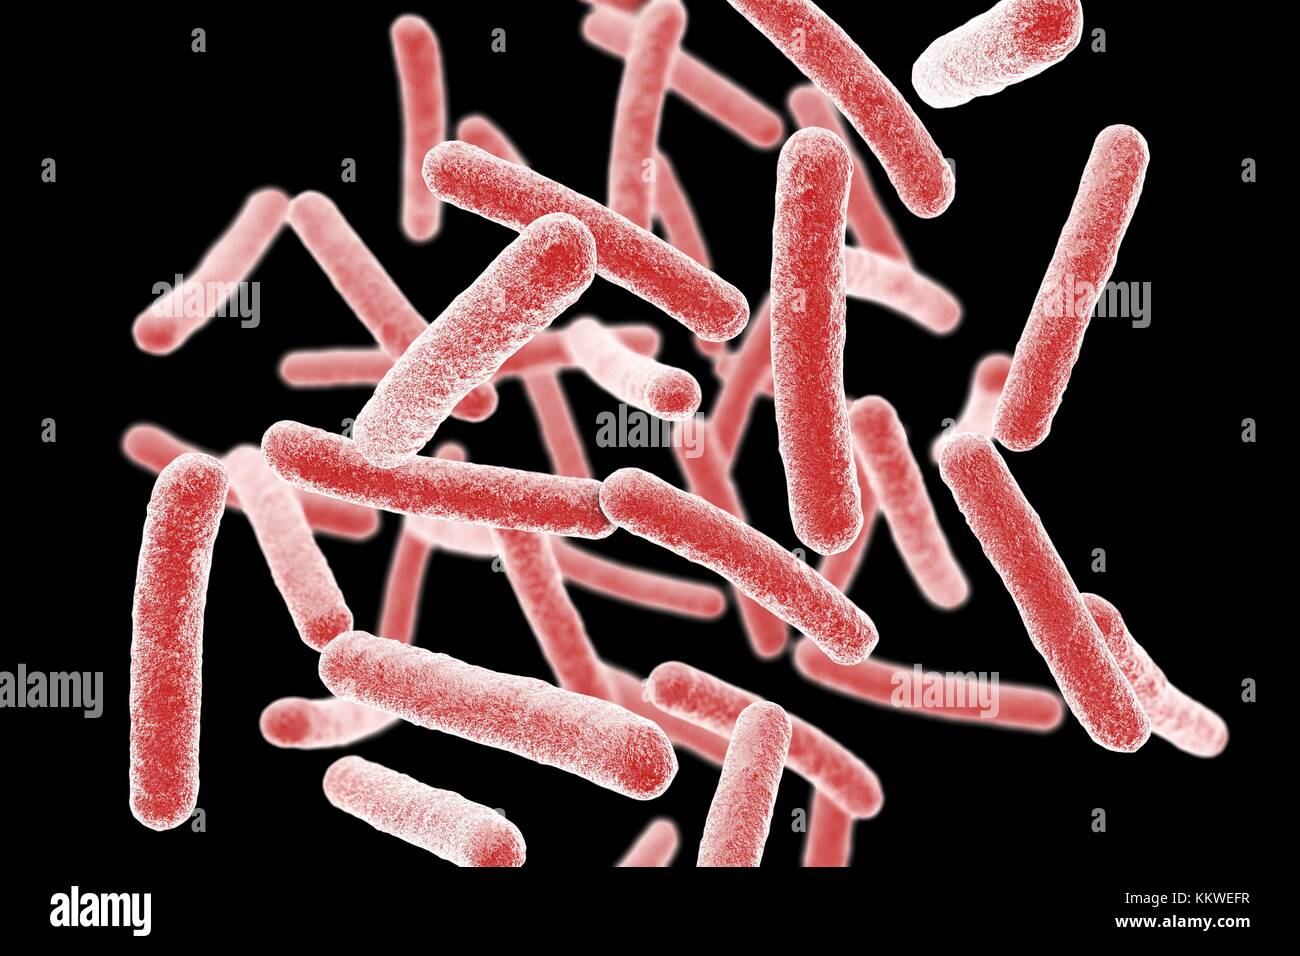 Mycobacterium chimaera bacteria, computer illustration. This bacterium has been found to colonise water in heater - Stock Image